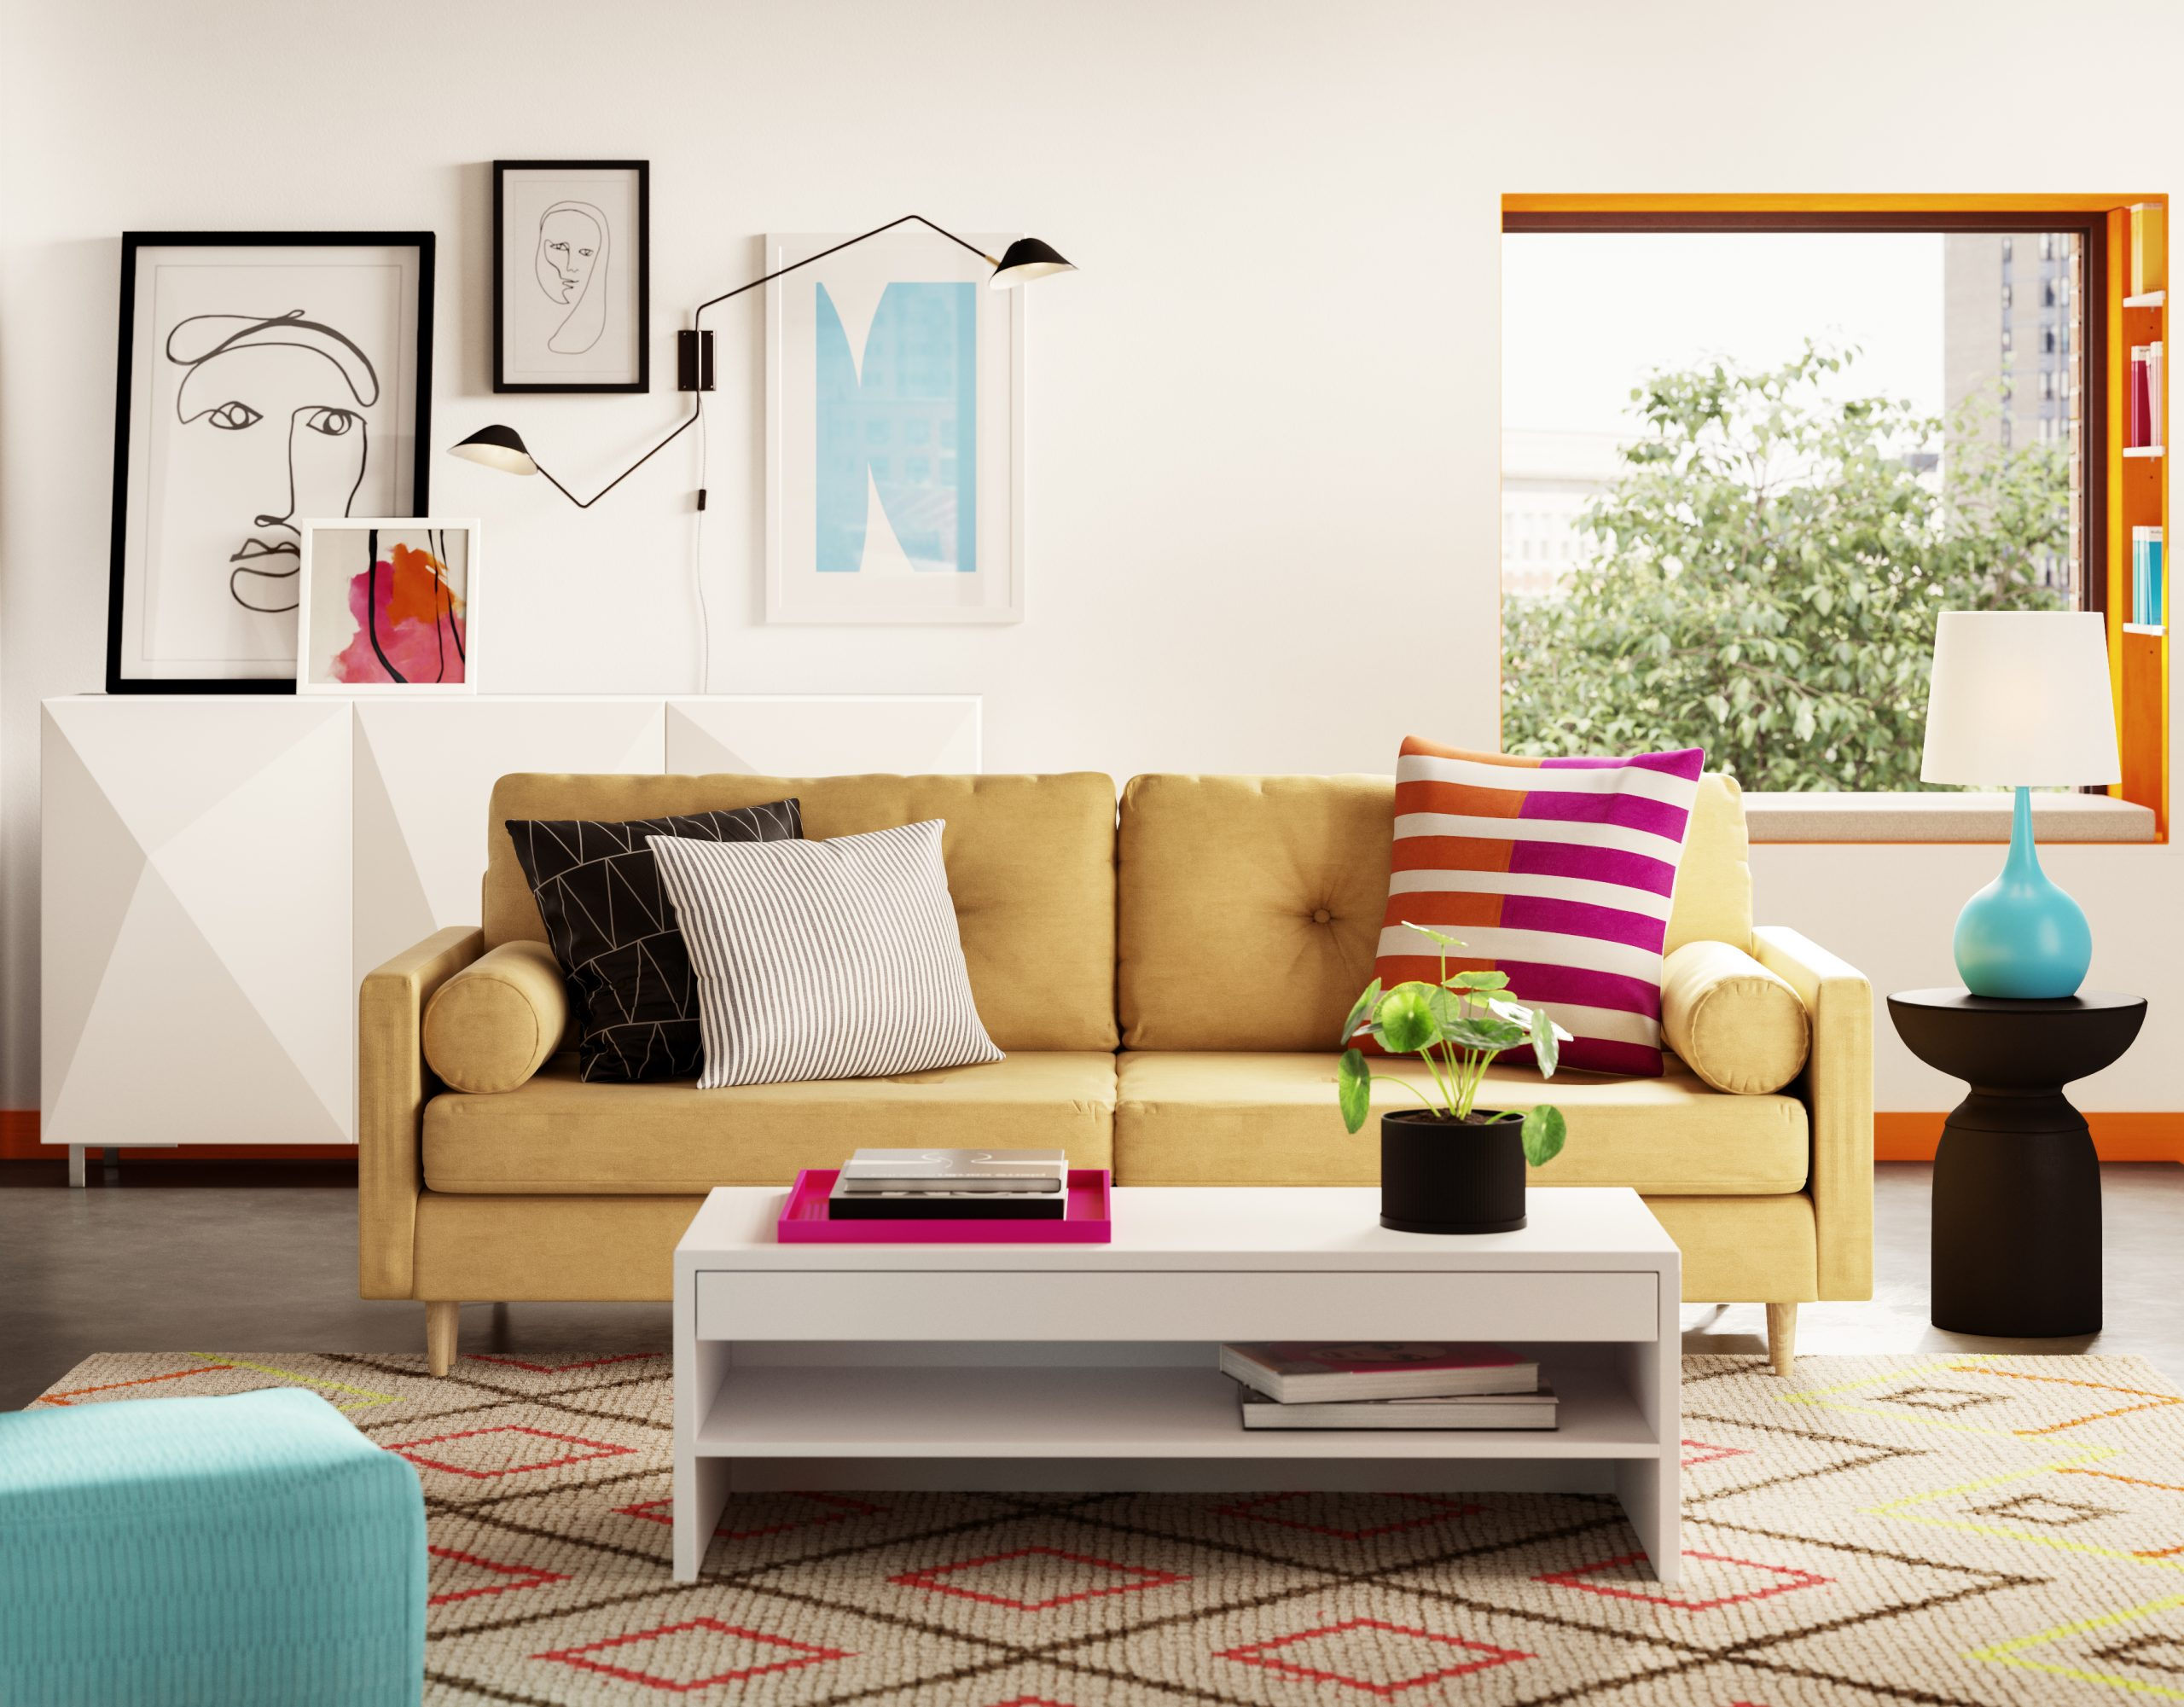 Image of a living room from Wayfair